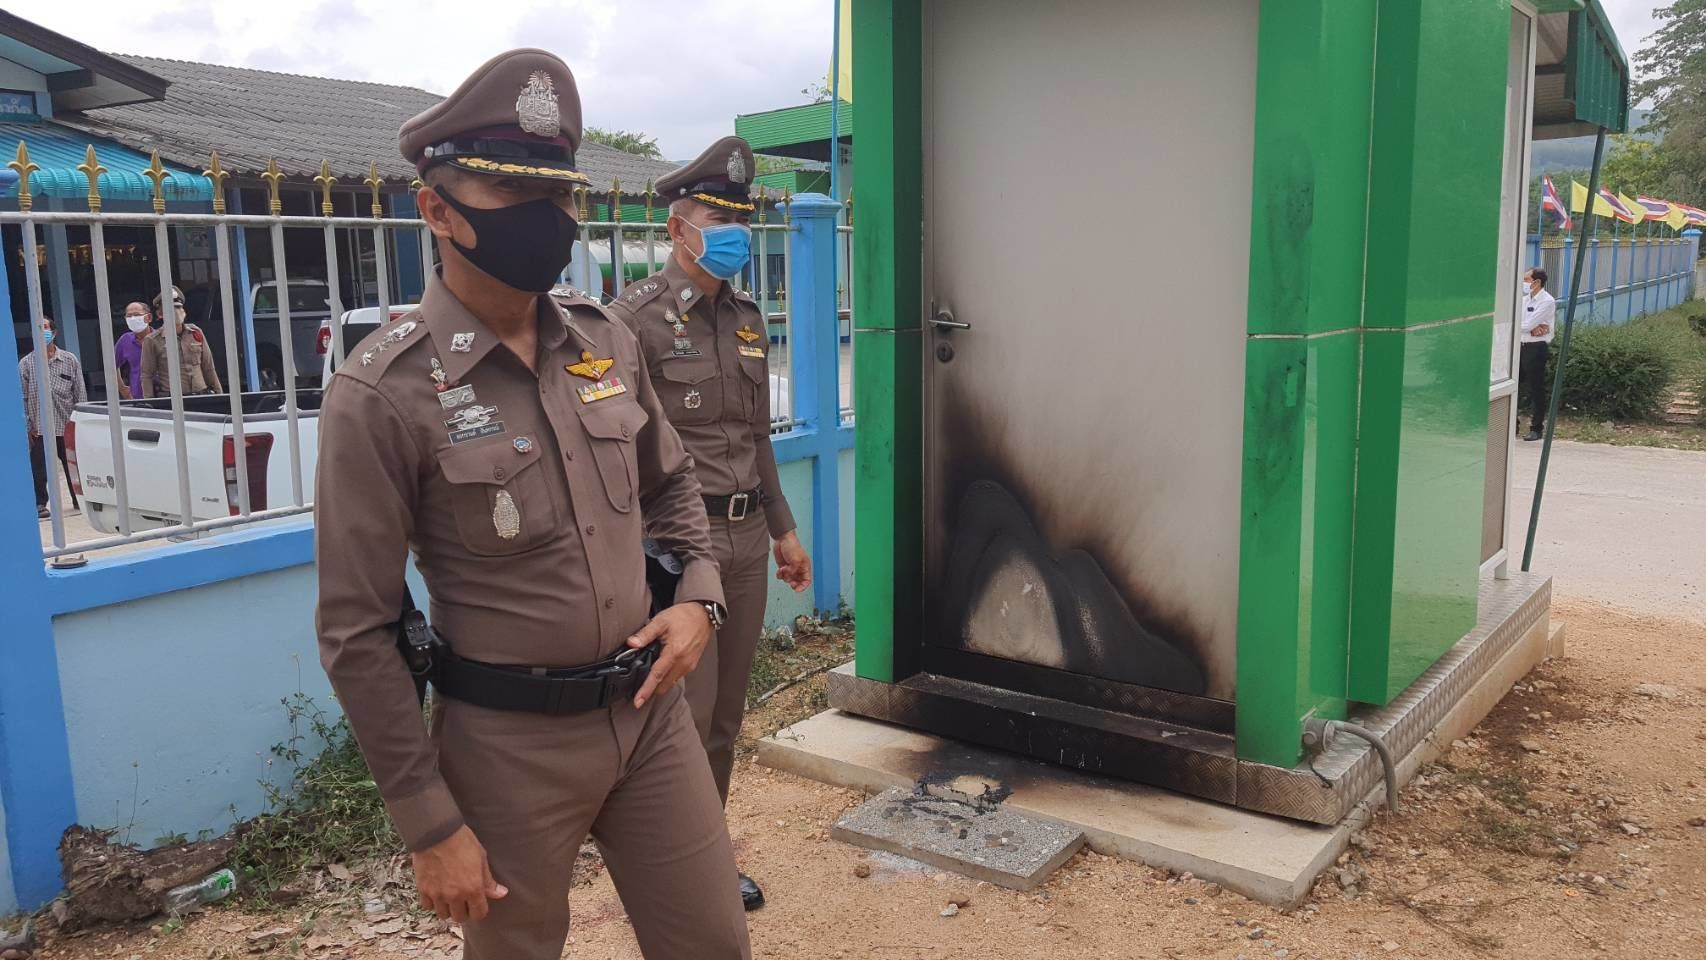 Drunken man incinerates ATM after running out of alcohol   News by Thaiger